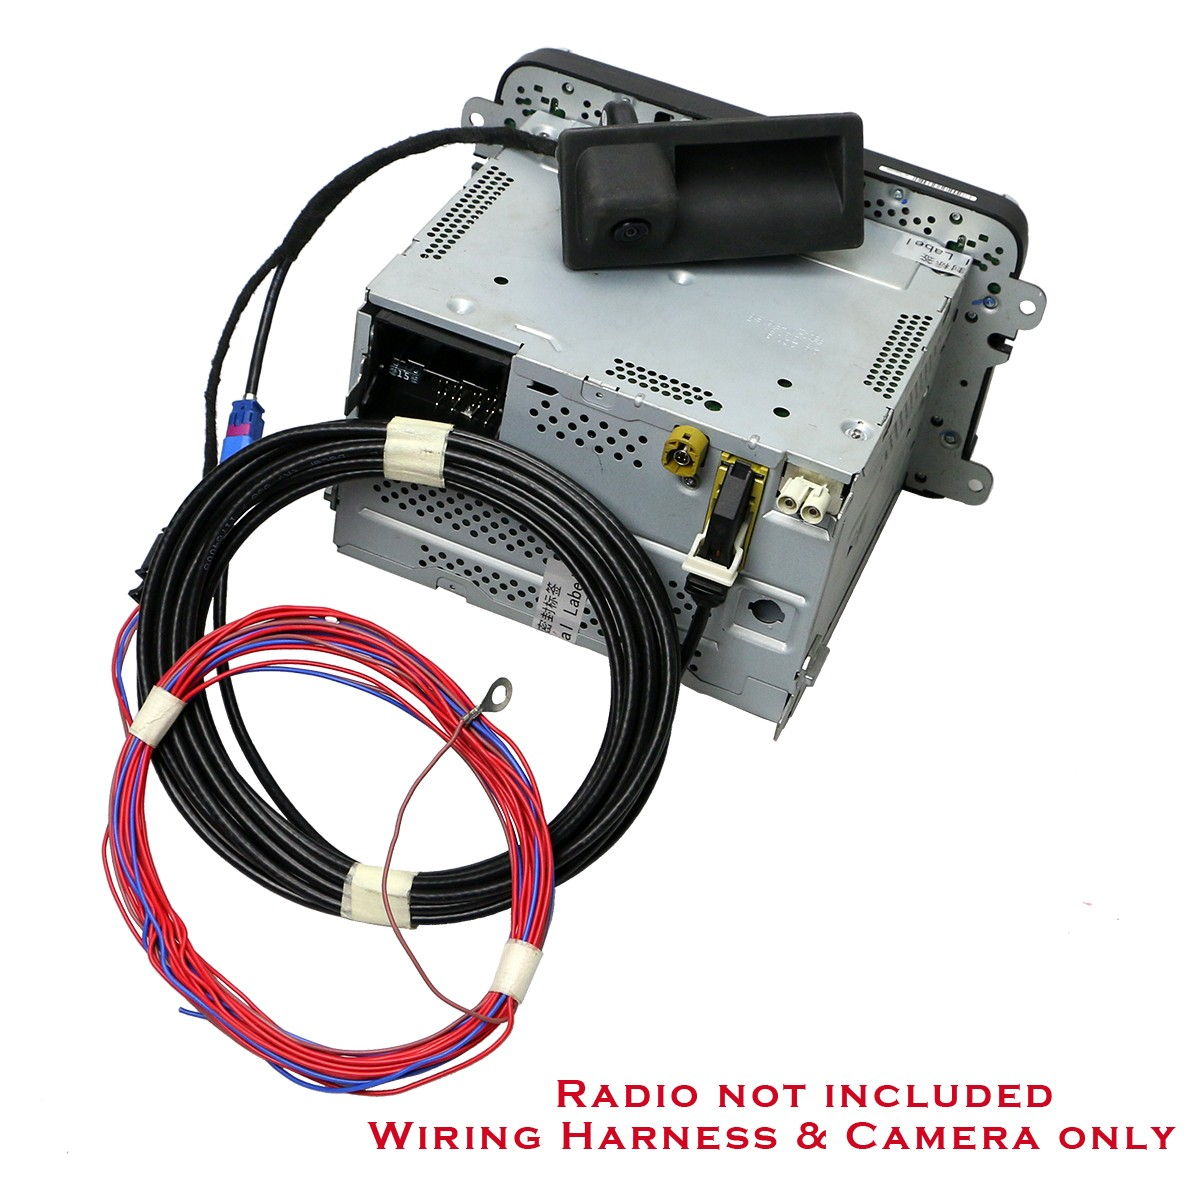 Rear_View_Camera_and_Wiring_Harness_for_RCD510_RNS510_and_RNS315_2 oem rgb rear view camera and wire harness set for vw rcd510 rns315 backup camera wiring harness at crackthecode.co